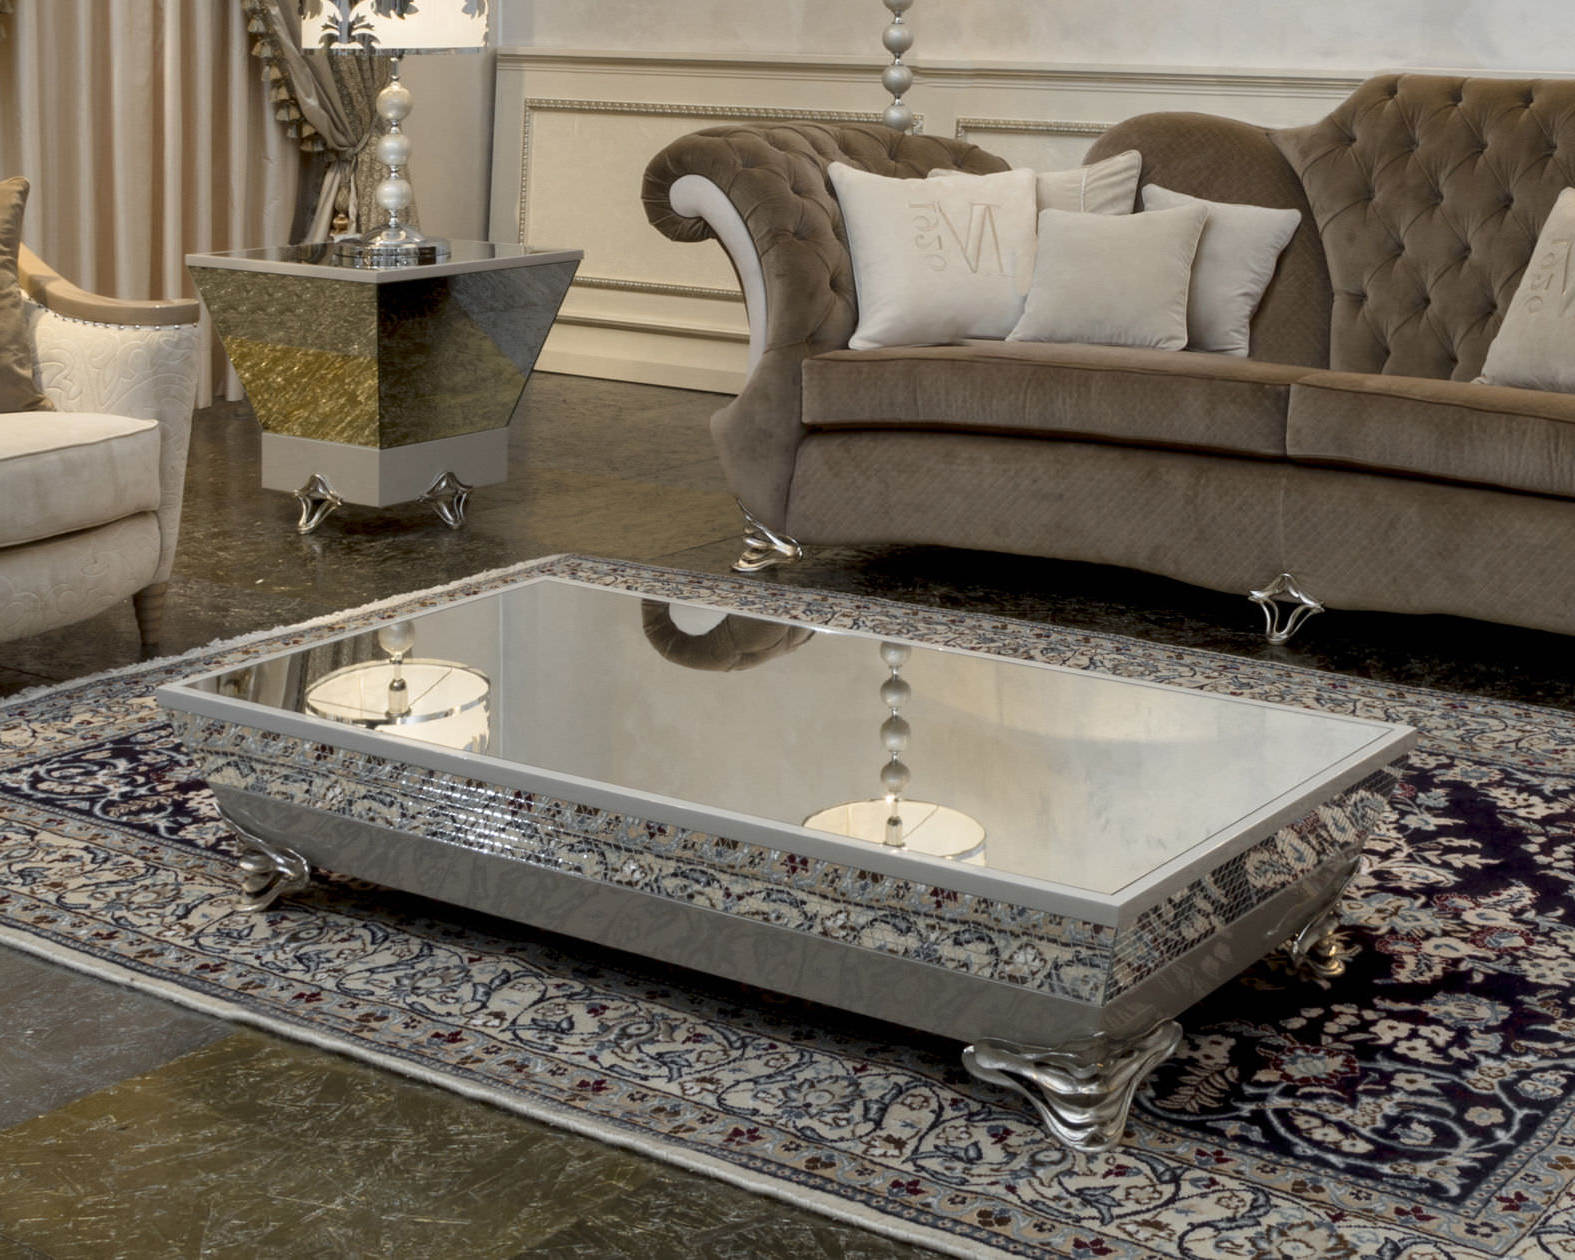 Beveled Mirror Designs Mirrored Coffee Table Tray Roy Home Design